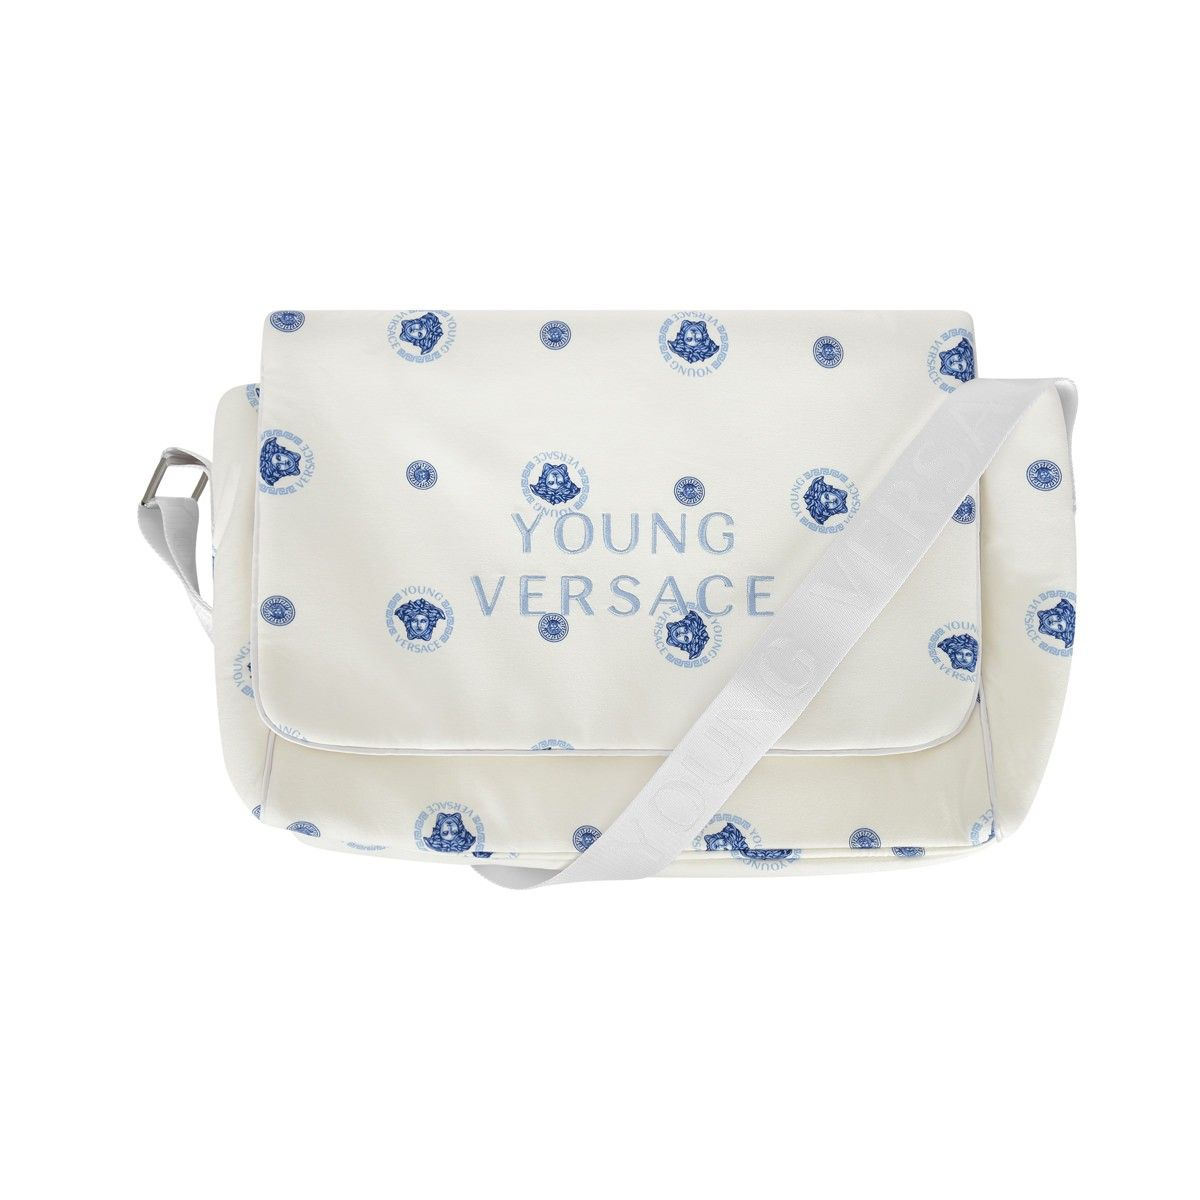 989d1f361c35 Young Versace Boys White   Blue Medusa Baby Changing Bag